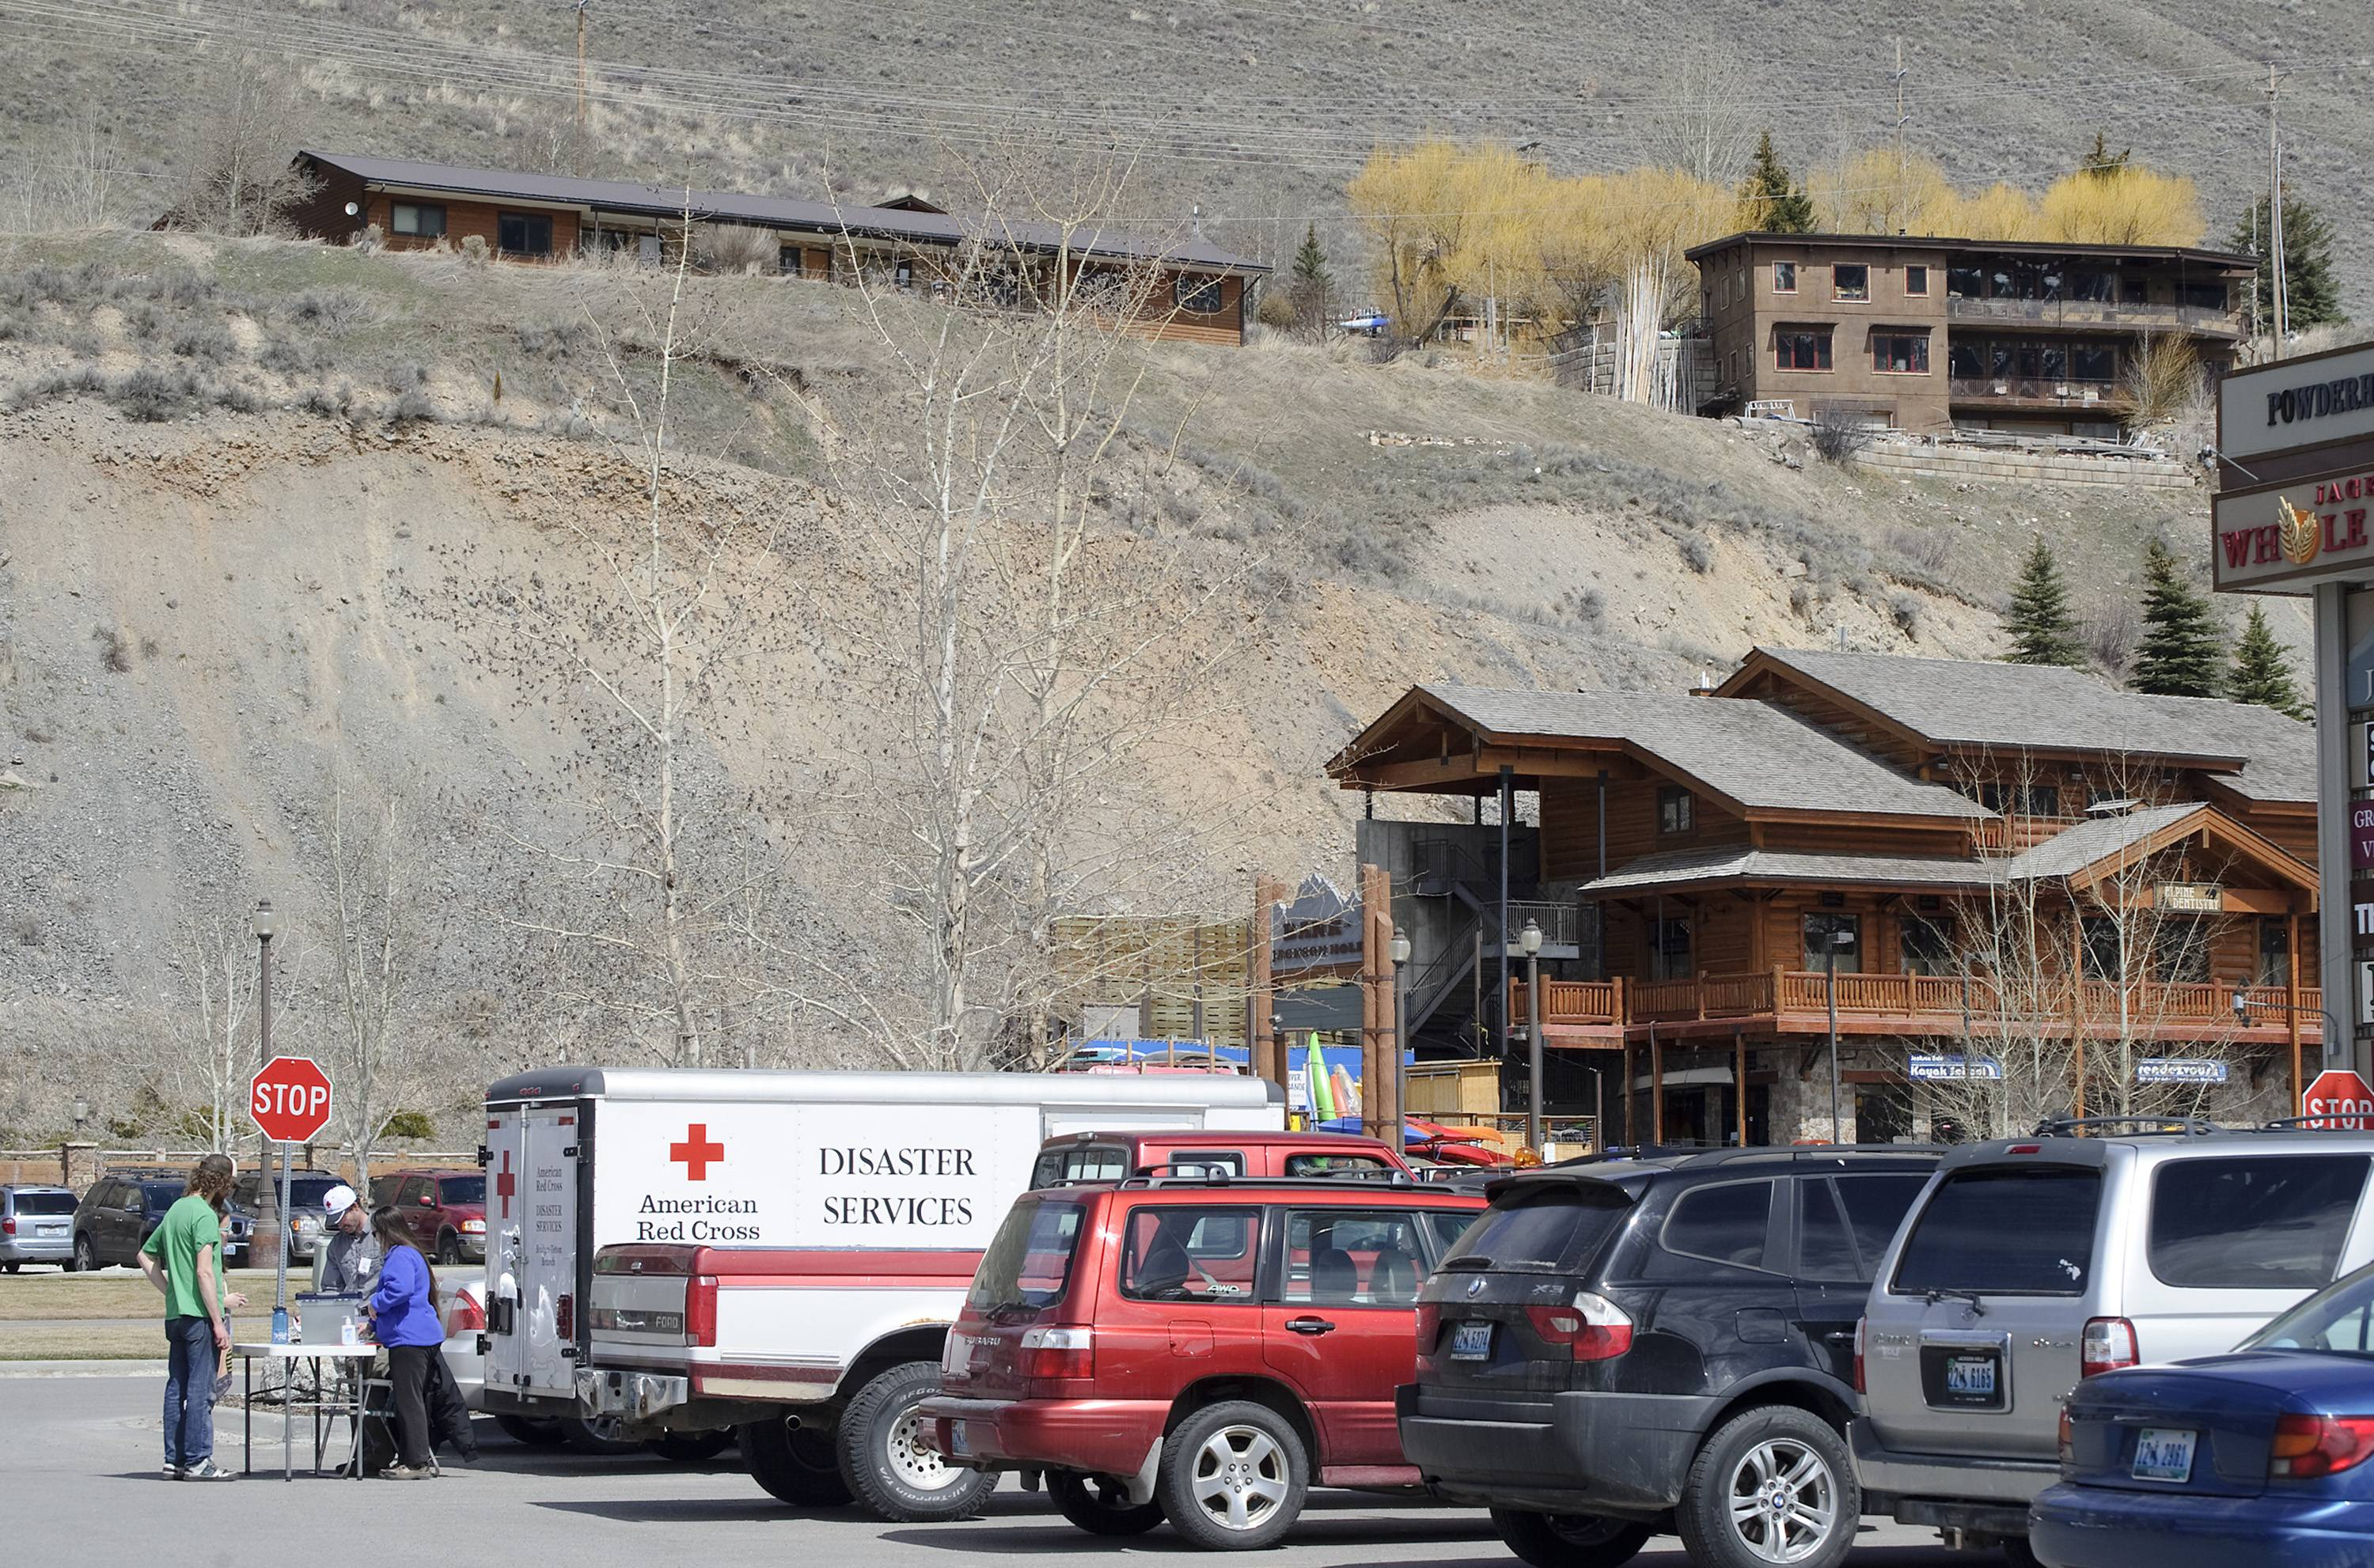 Displaced residents of Budge Drive in Jackson, Wyo. register Thursday with the American Red Cross as geologists study the hillside on East Gros Ventre Butte, where the potential for a landslide called for an evacuation.